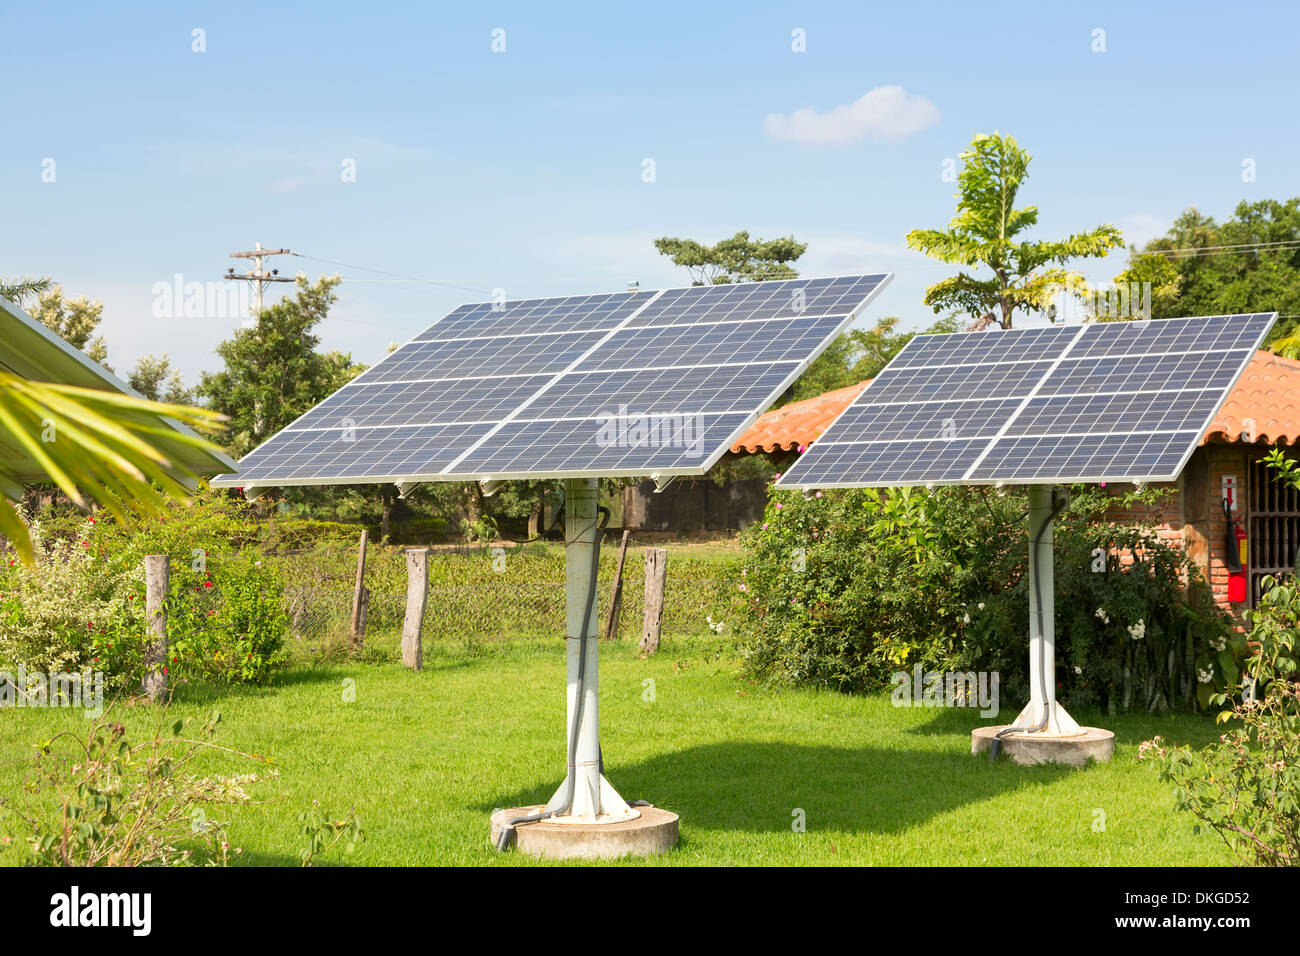 Panel of the solar batteries in the garden - Stock Image